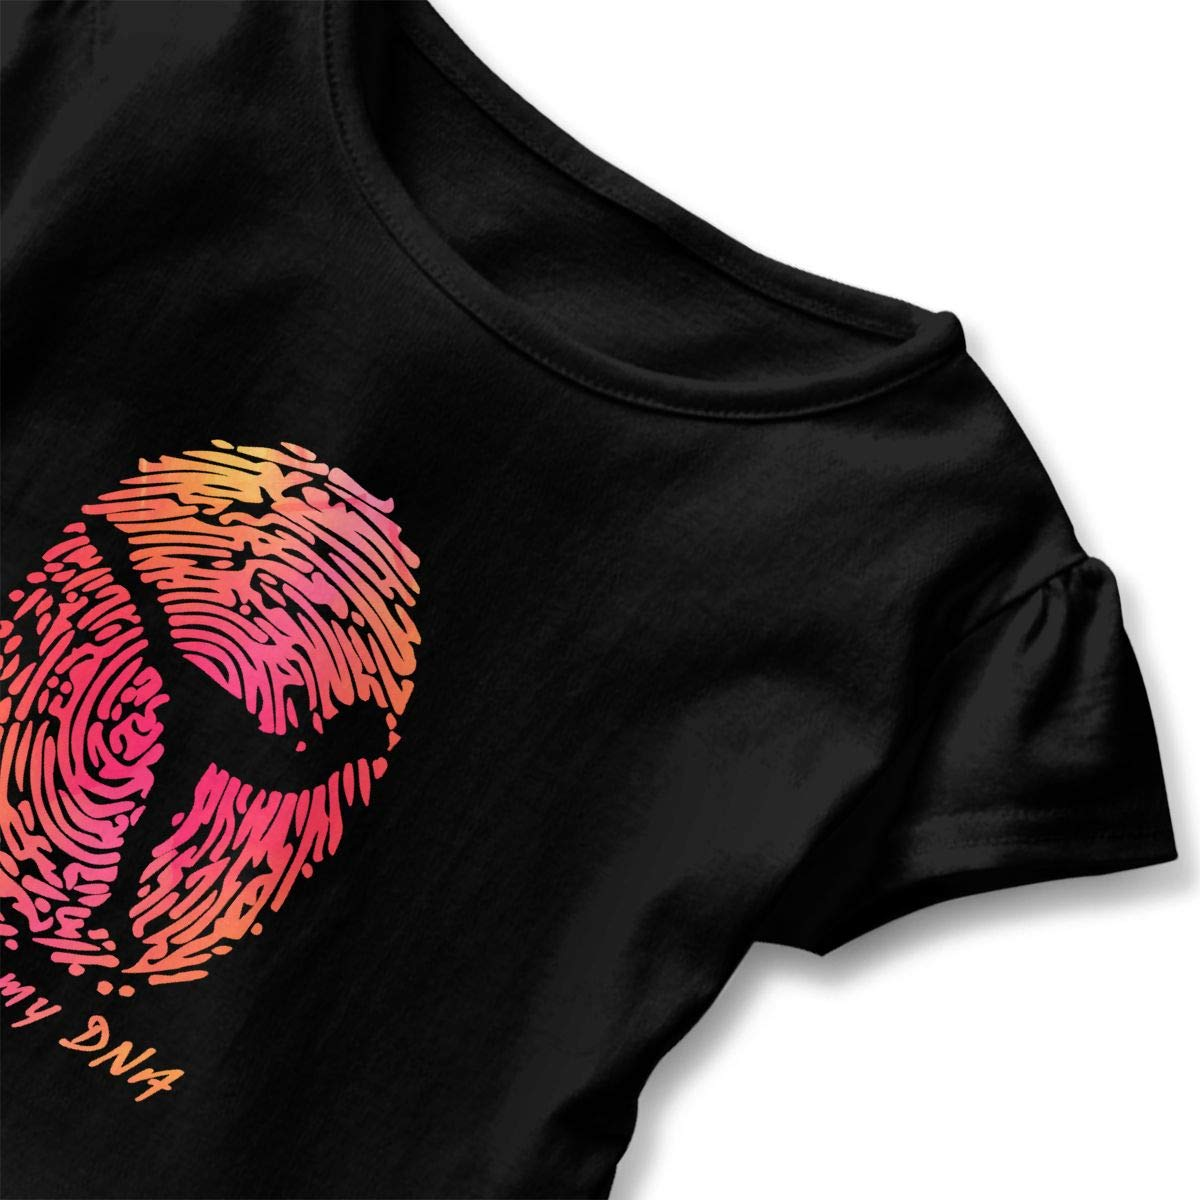 CZnuen Figure Skating Its in My DNA Baby Girls Round Neck Short Sleeve Ruffle T-Shirt Top